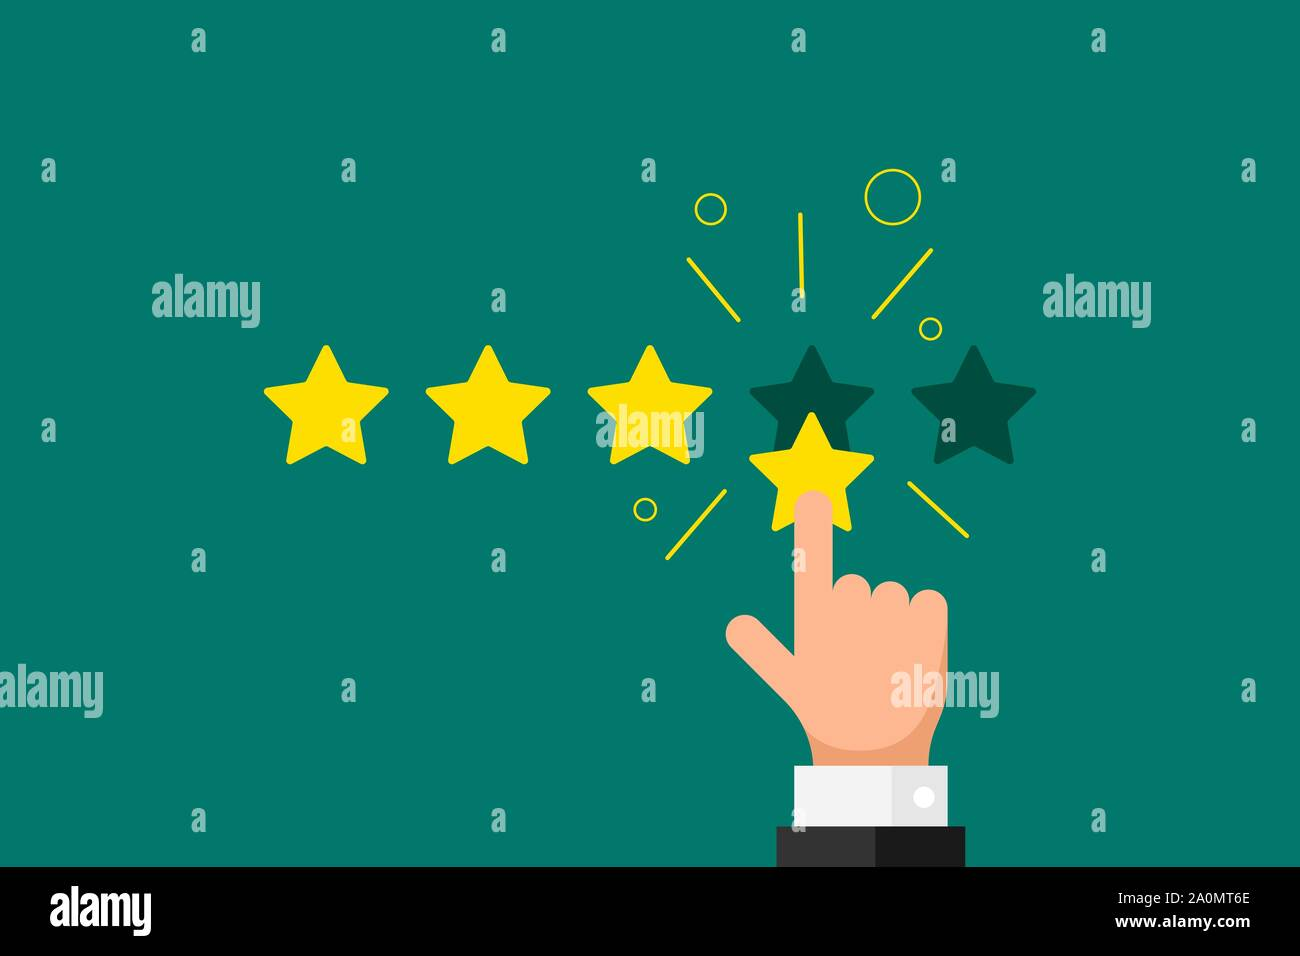 Online feedback reputation good quality customer review concept flat style. Businessman hand finger pointing 4 four gold star rating on green background. Vector rank result illustration Stock Vector